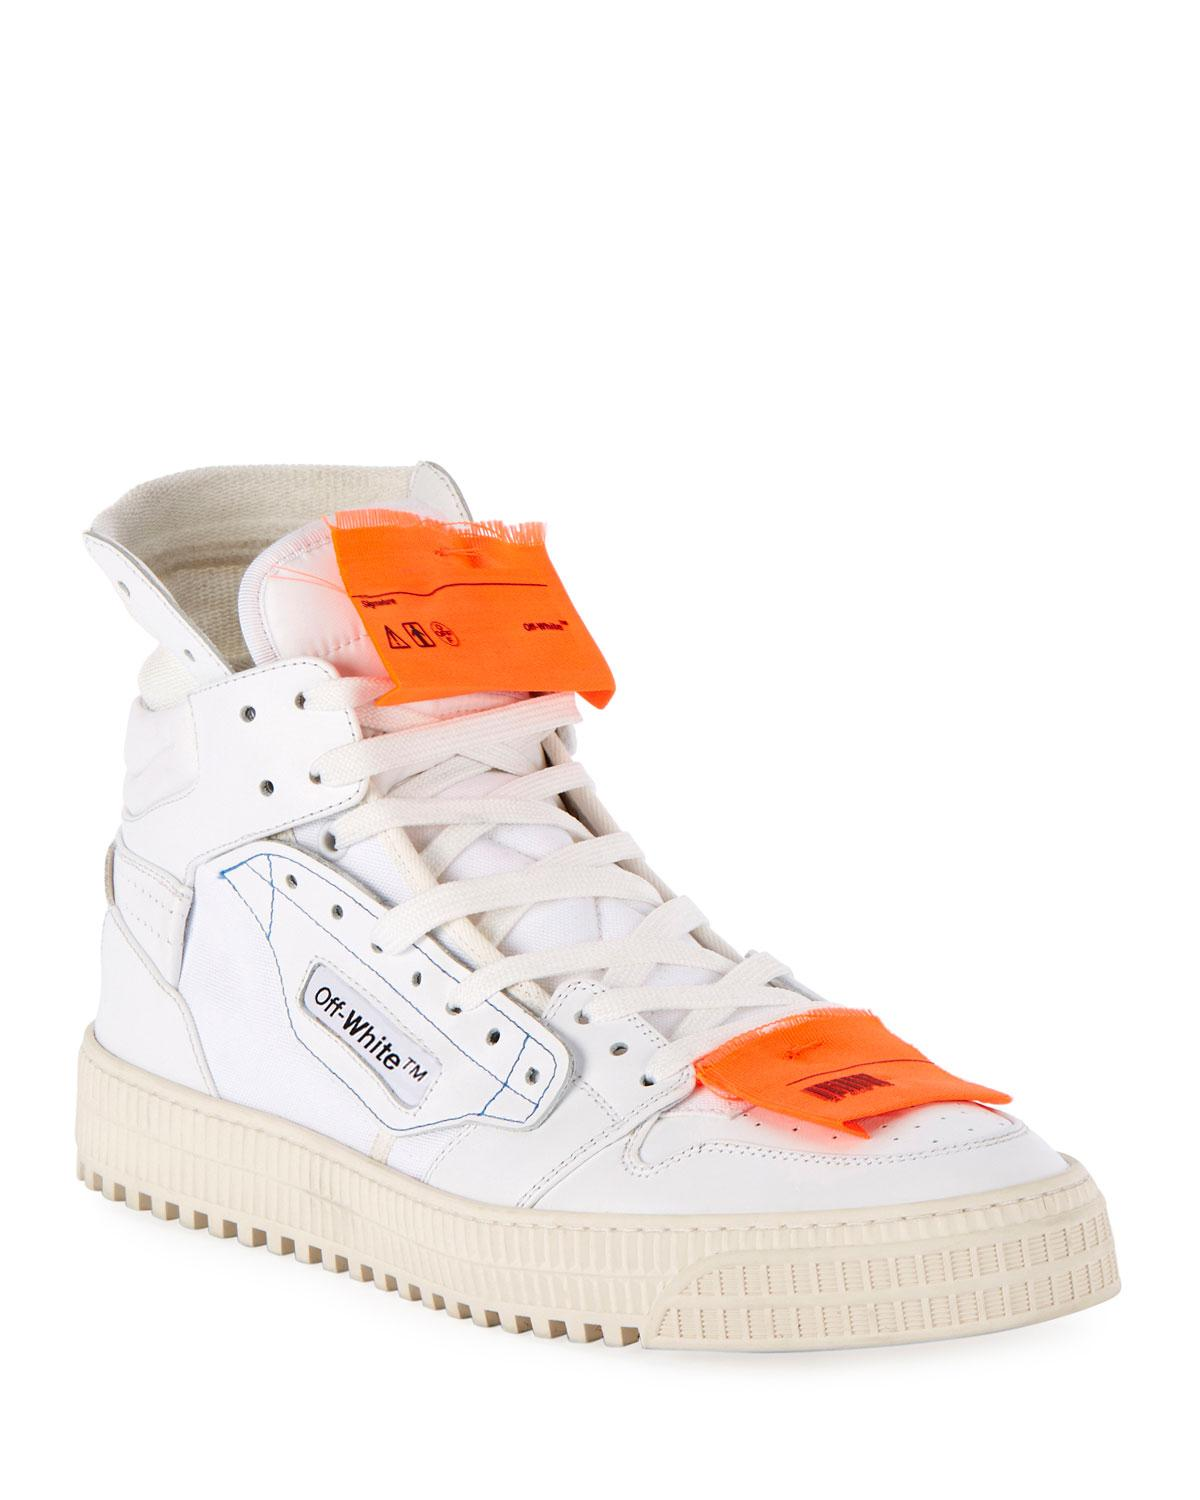 ef9fd350b7f9c Off-White c o Virgil Abloh. White Men s Low 3.0 Leather High-top Sneakers